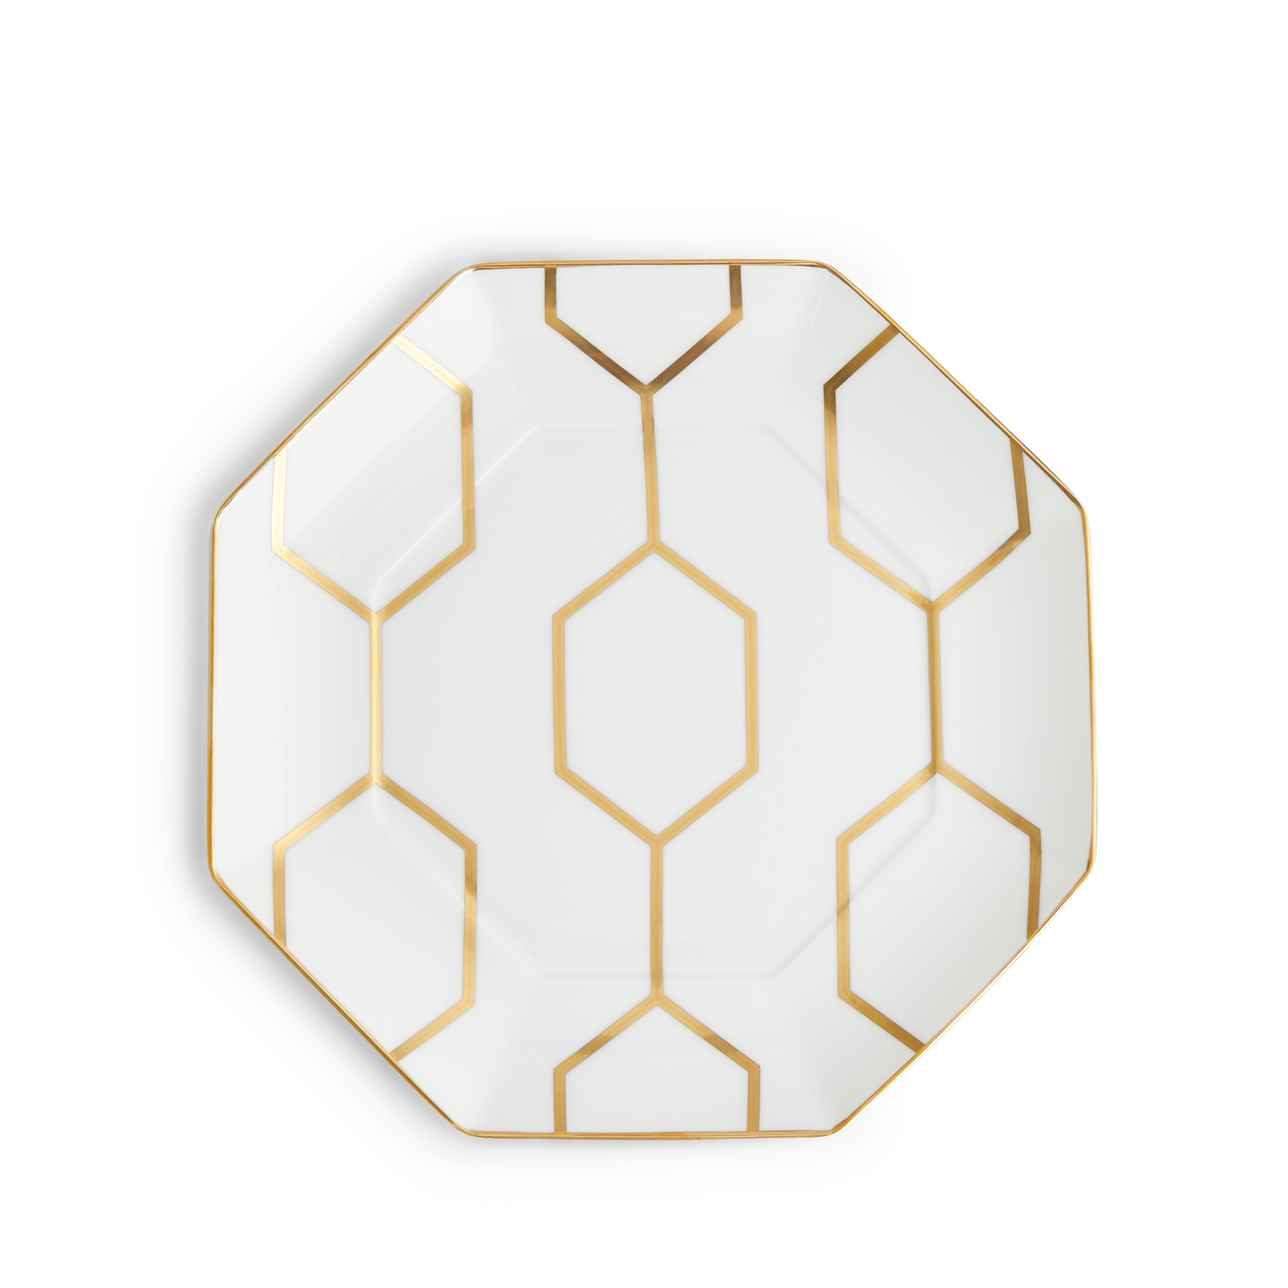 Arris White Octagonal Side Plate 23cm